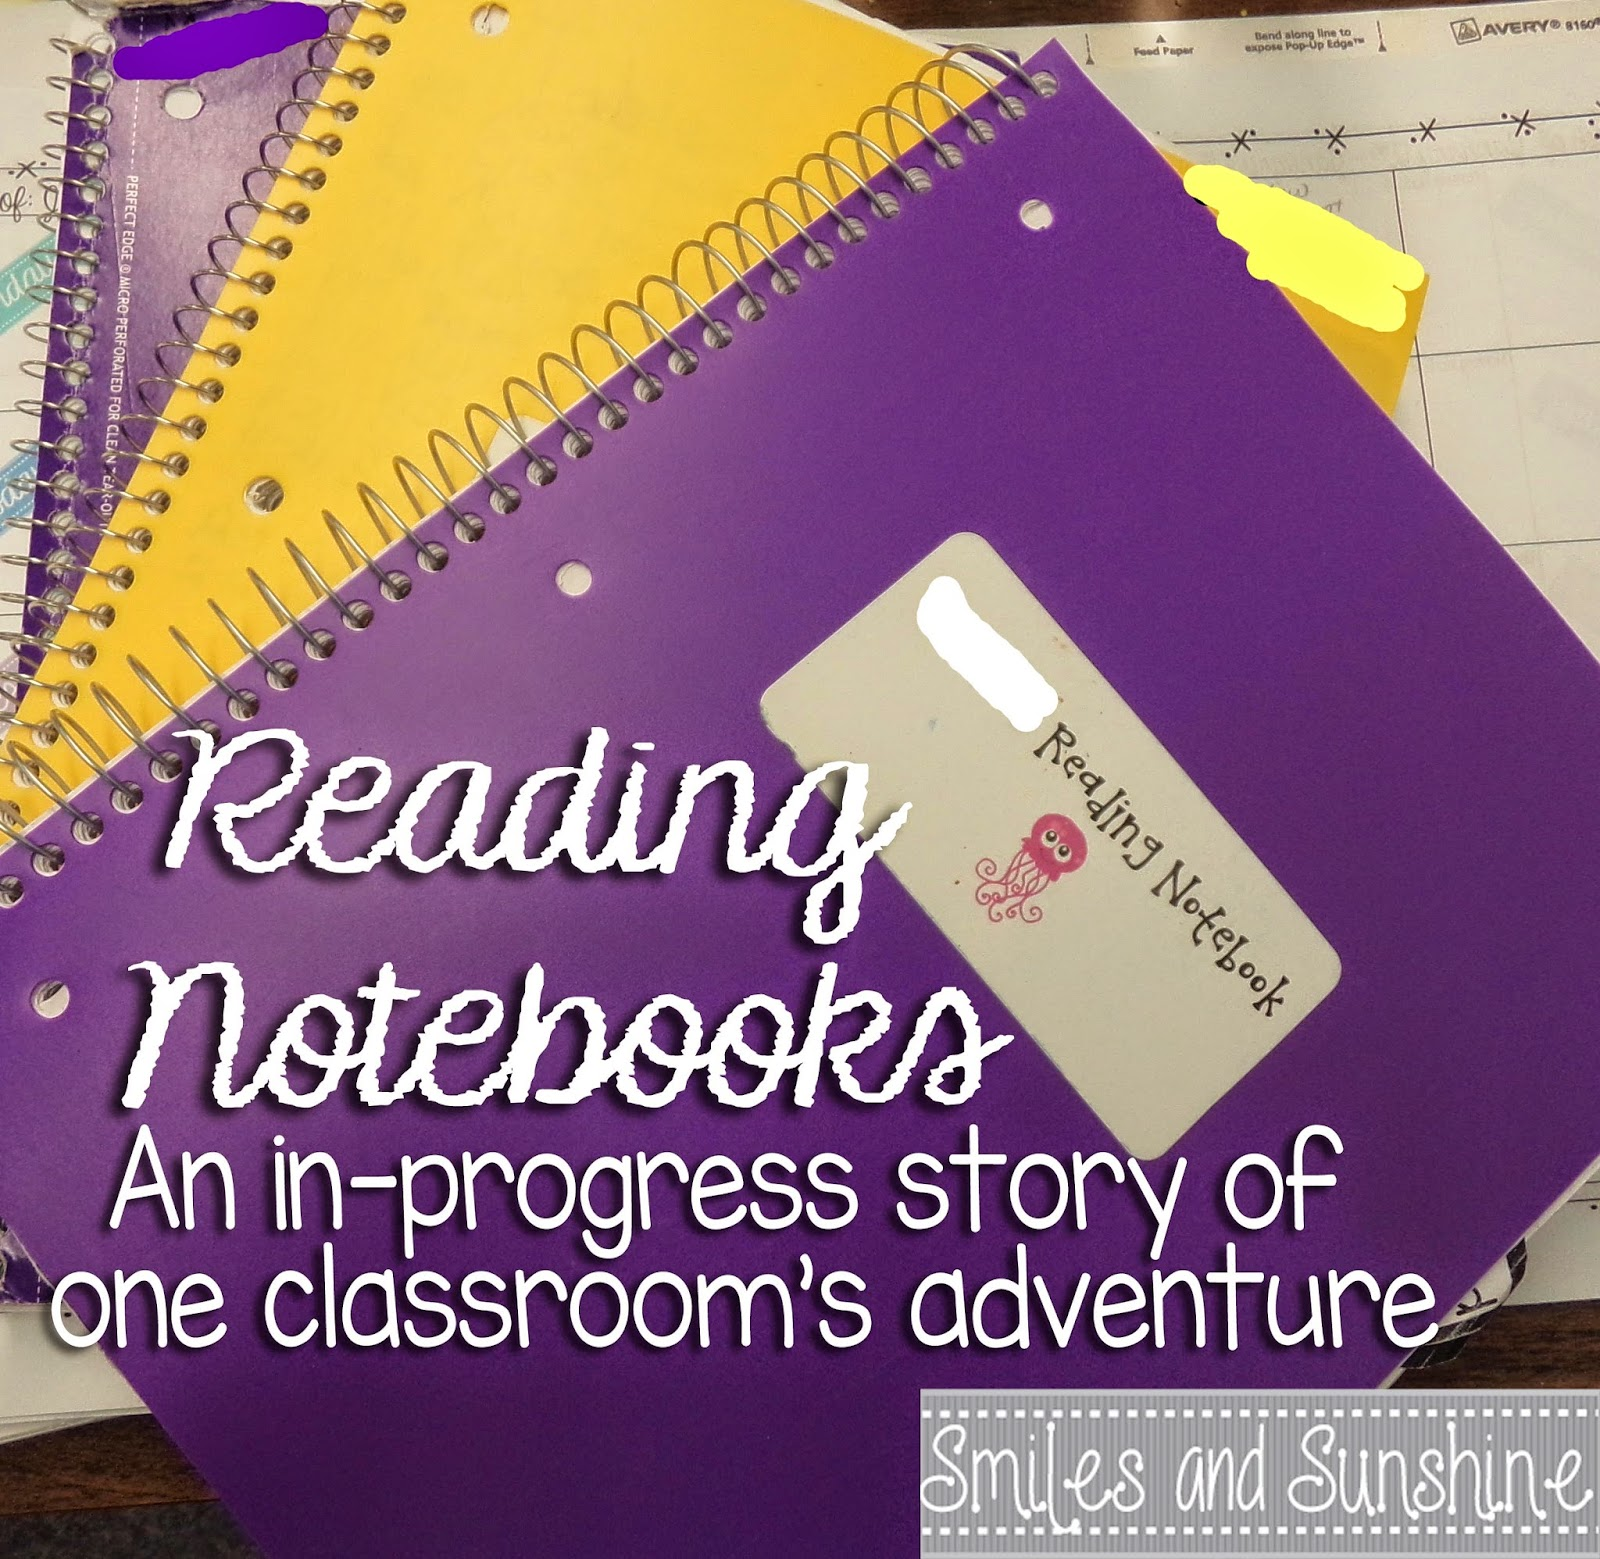 http://kaitlyn-smiles.blogspot.com/2015/01/reading-notebooks.html